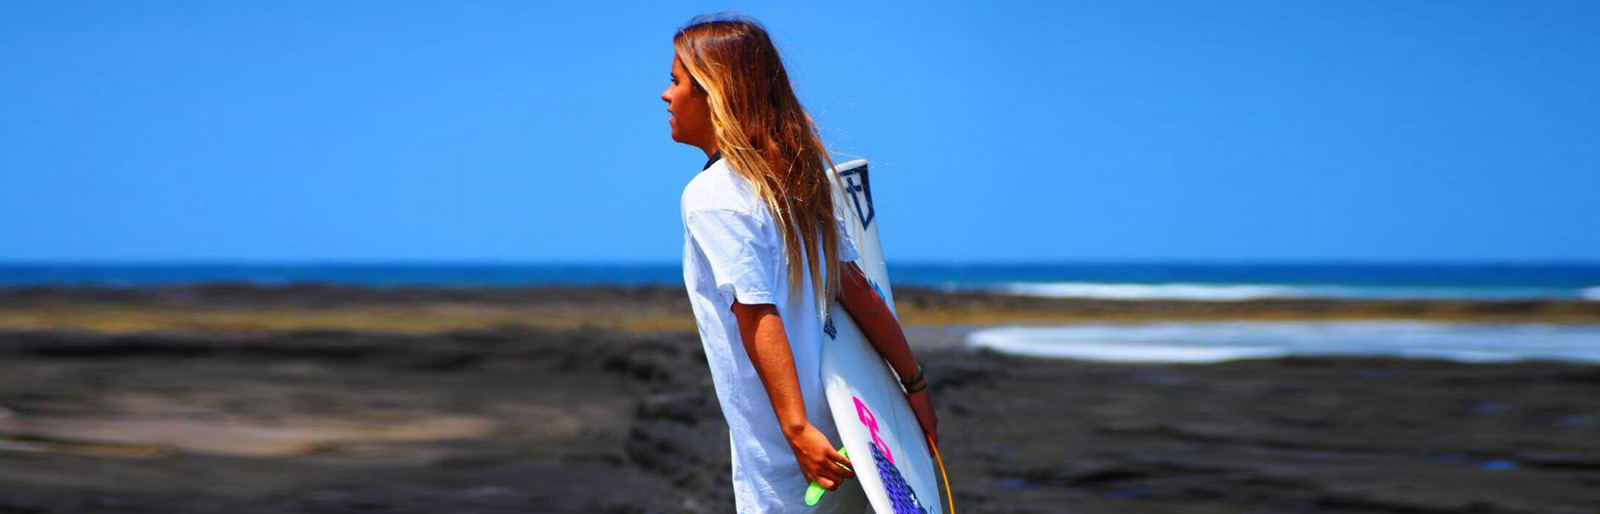 Team Rider La Santa Surf Marcela Machado